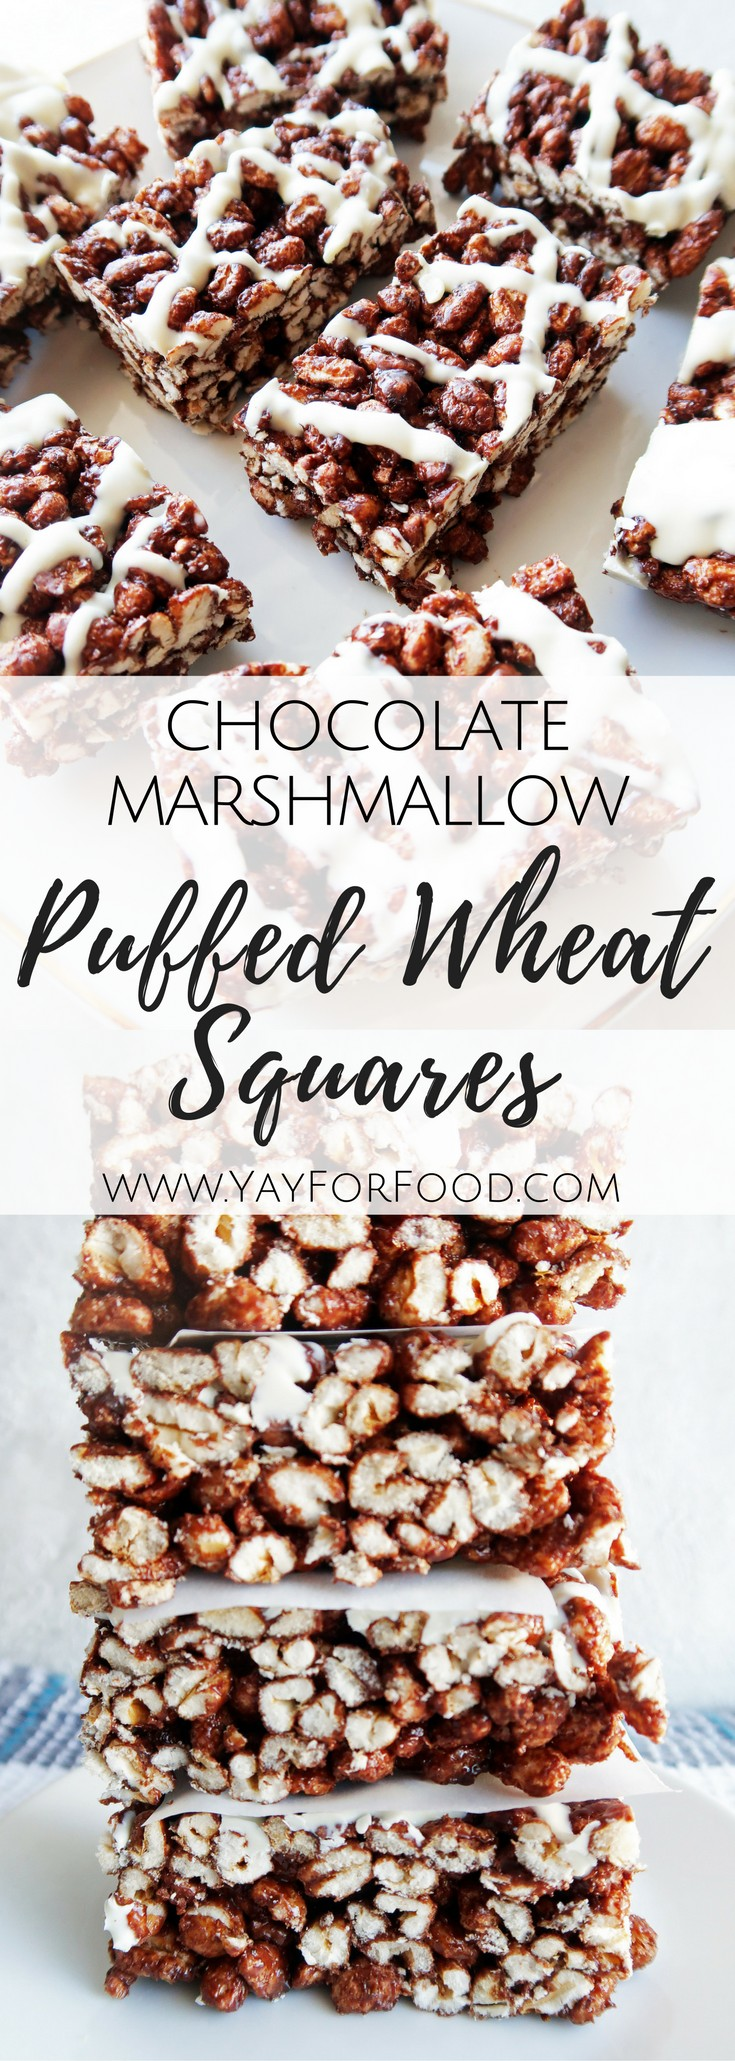 Try these no-bake soft and chewy chocolate marshmallow puffed wheat squares with white chocolate drizzle. Make it in 10 minutes with only 7 ingredients!